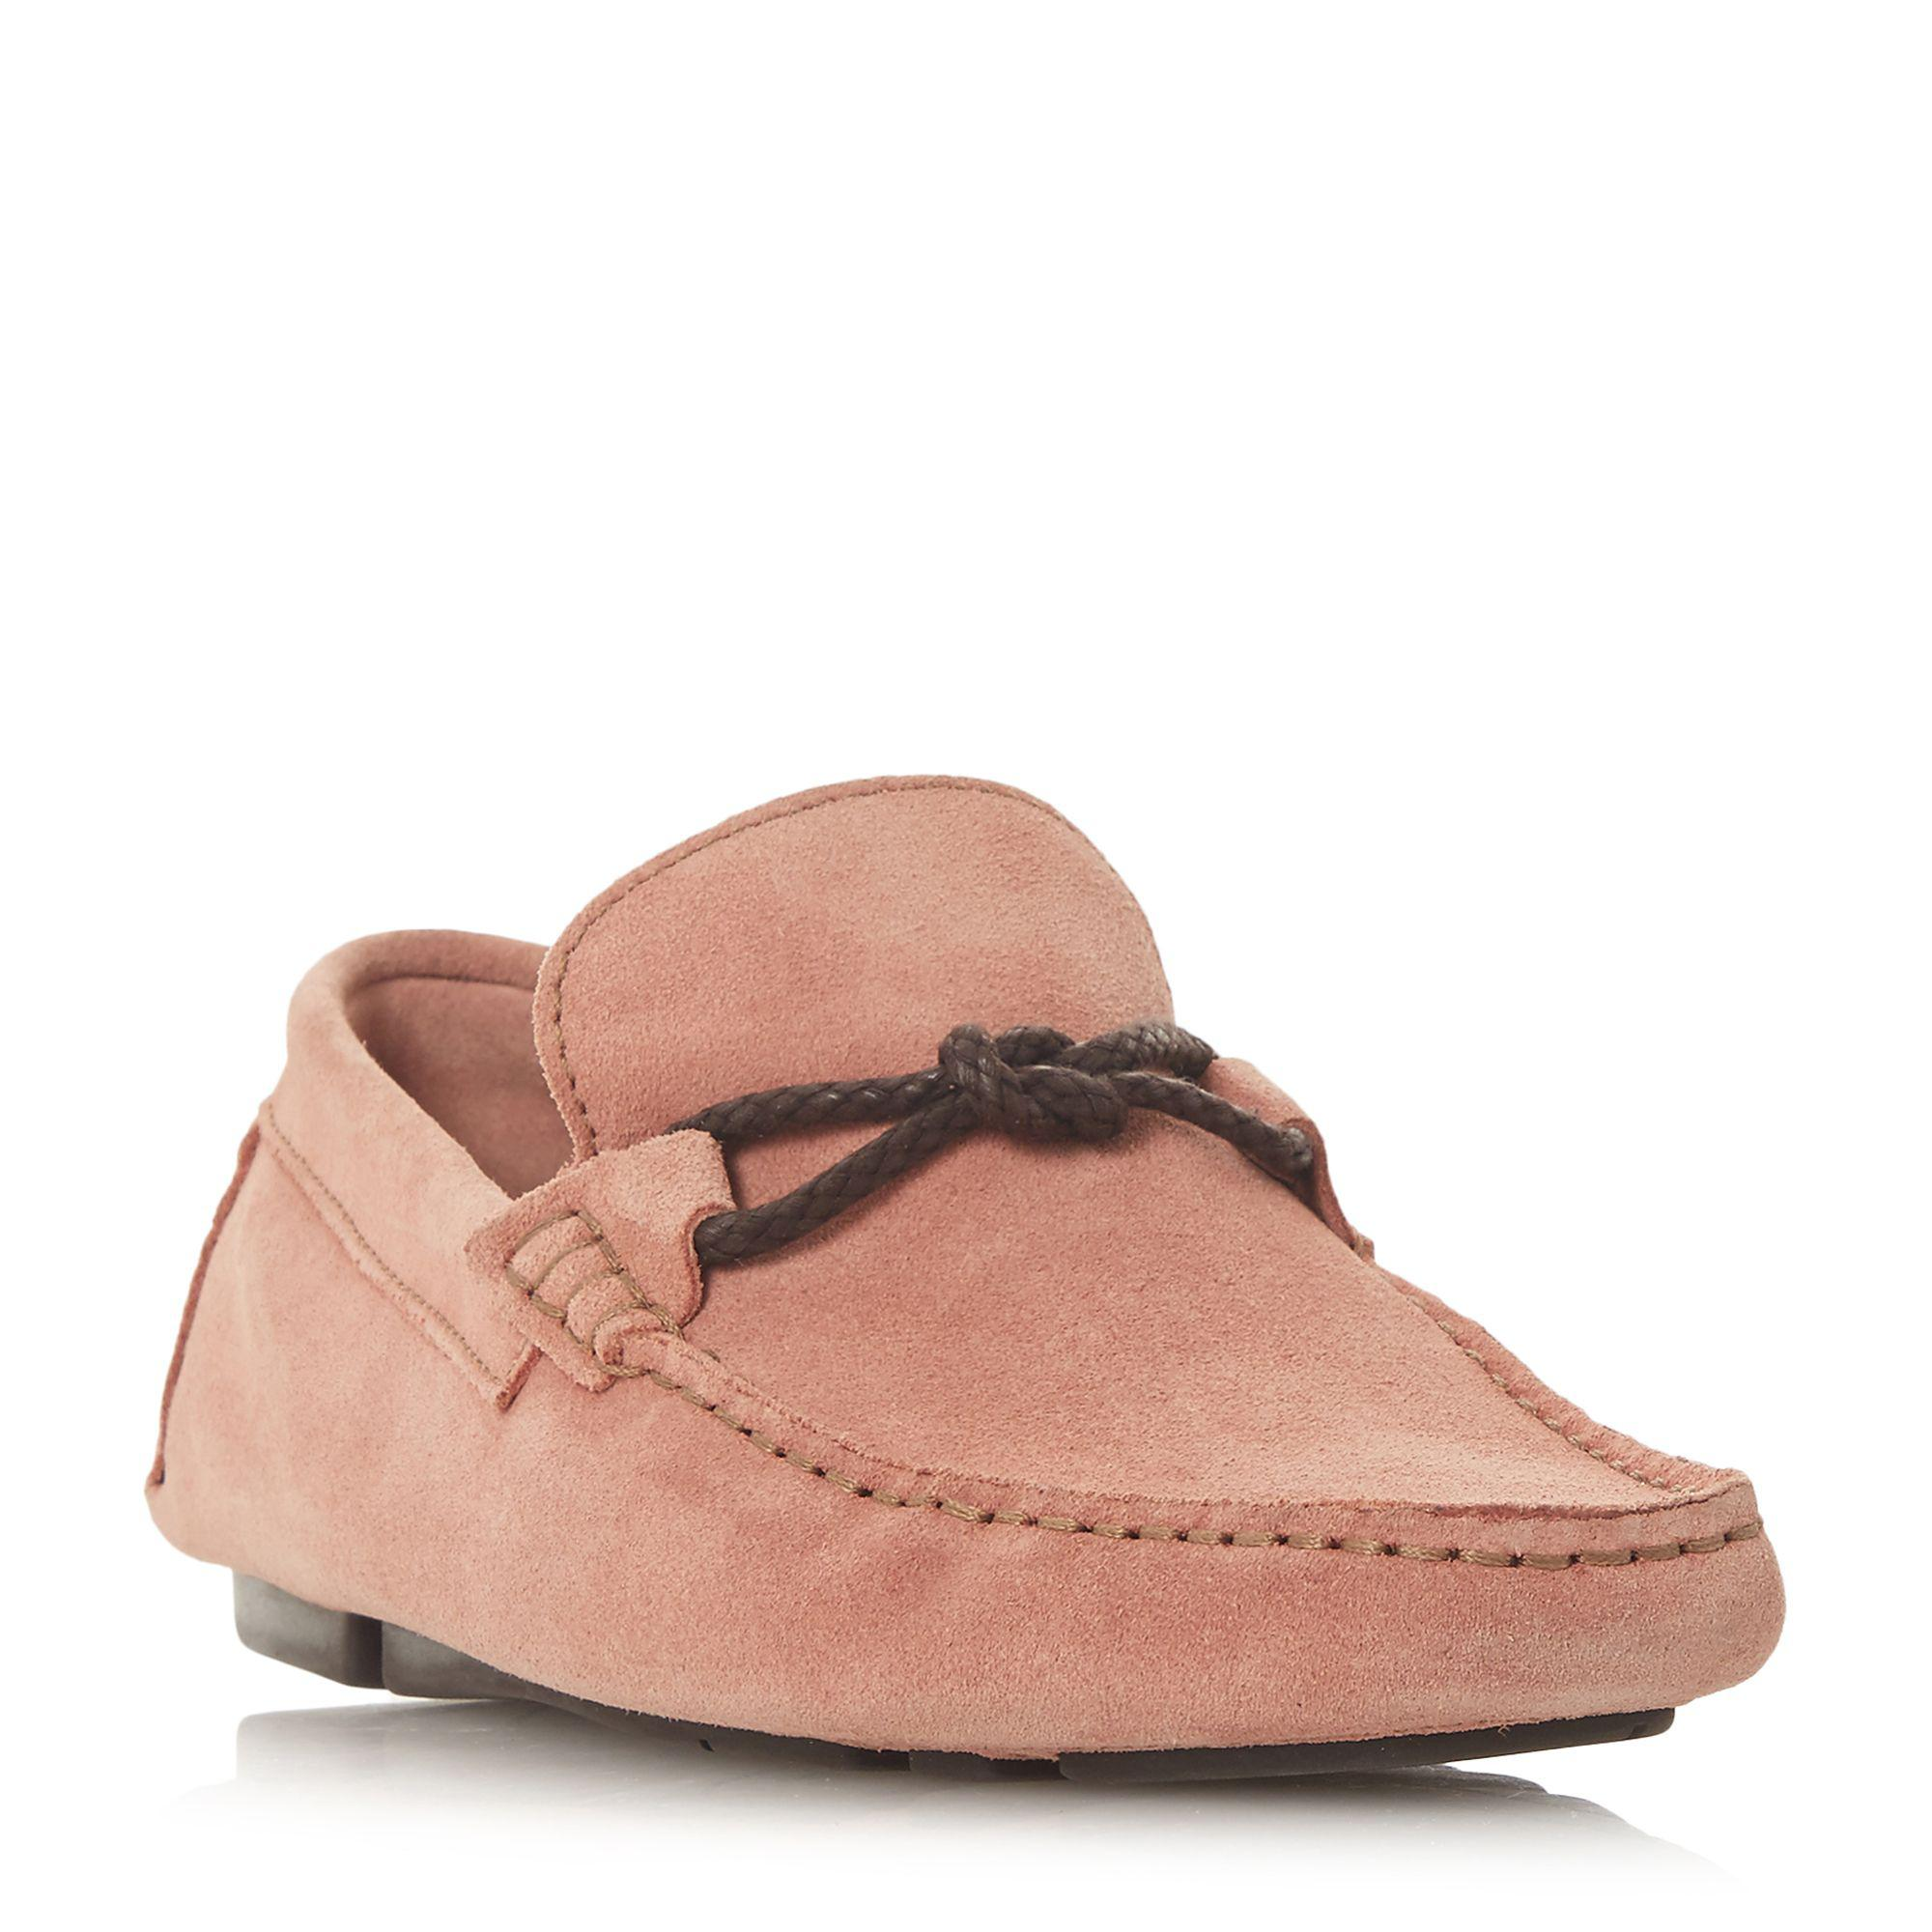 discount with mastercard Navy 'Bandit x' weave knot lace driver loafers eastbay discount shop for cheap sale limited edition e8pyfjDPKU